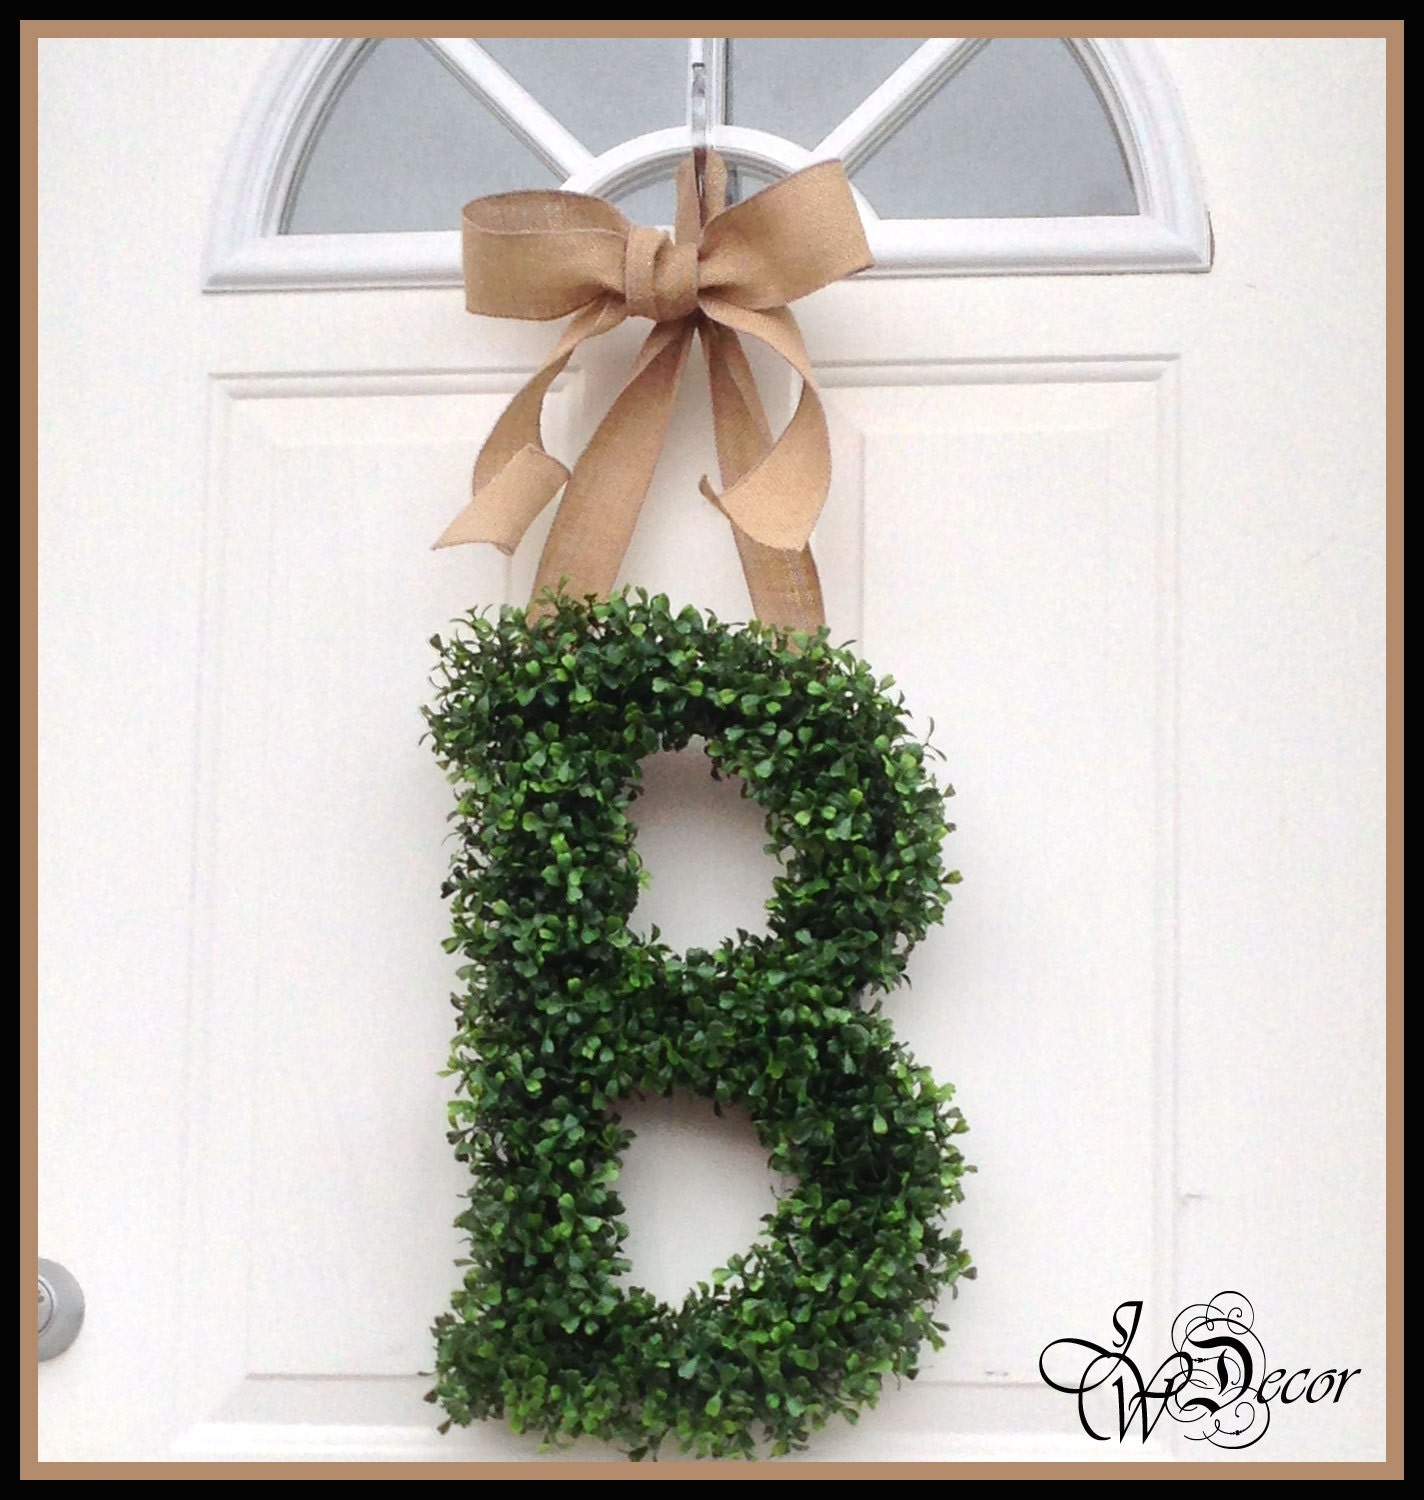 Artificial Boxwood Wreath For Sale - Monogram door wreath wreaths boxwood wreath all year wreath